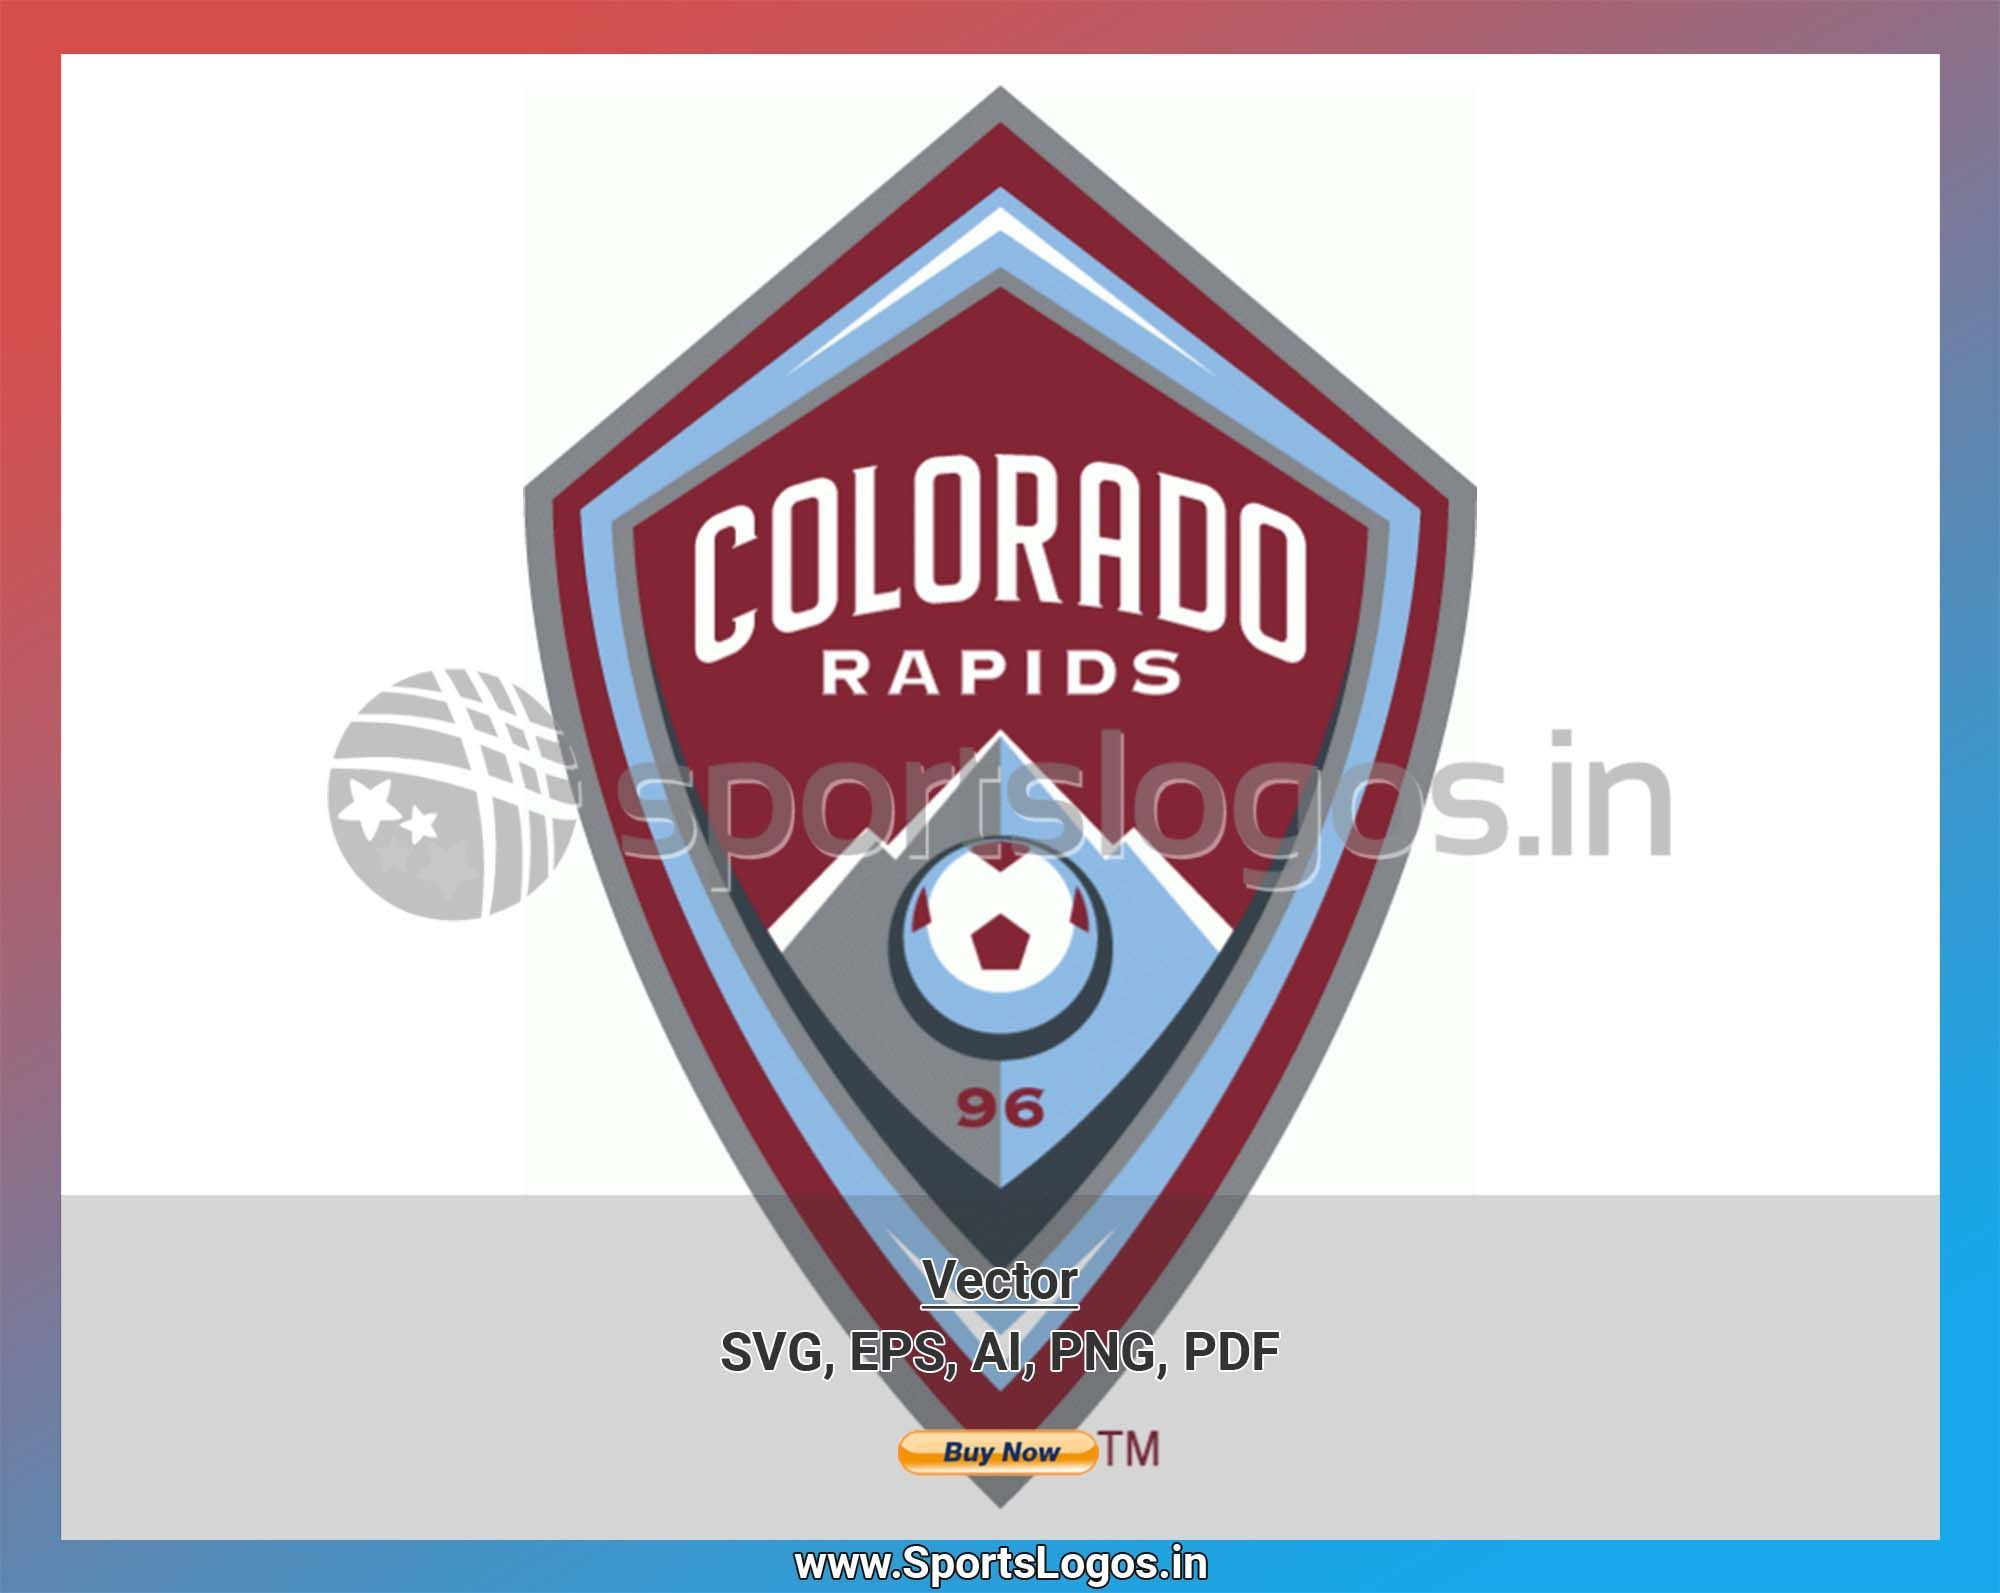 Colorado Rapids Soccer Sports Vector Svg Logo In 5 Formats Spln000984 Sports Logos Embroidery Vector For Nfl Nba Nhl Mlb Milb And More Colorado Rapids Sport Soccer Embroidery Logo